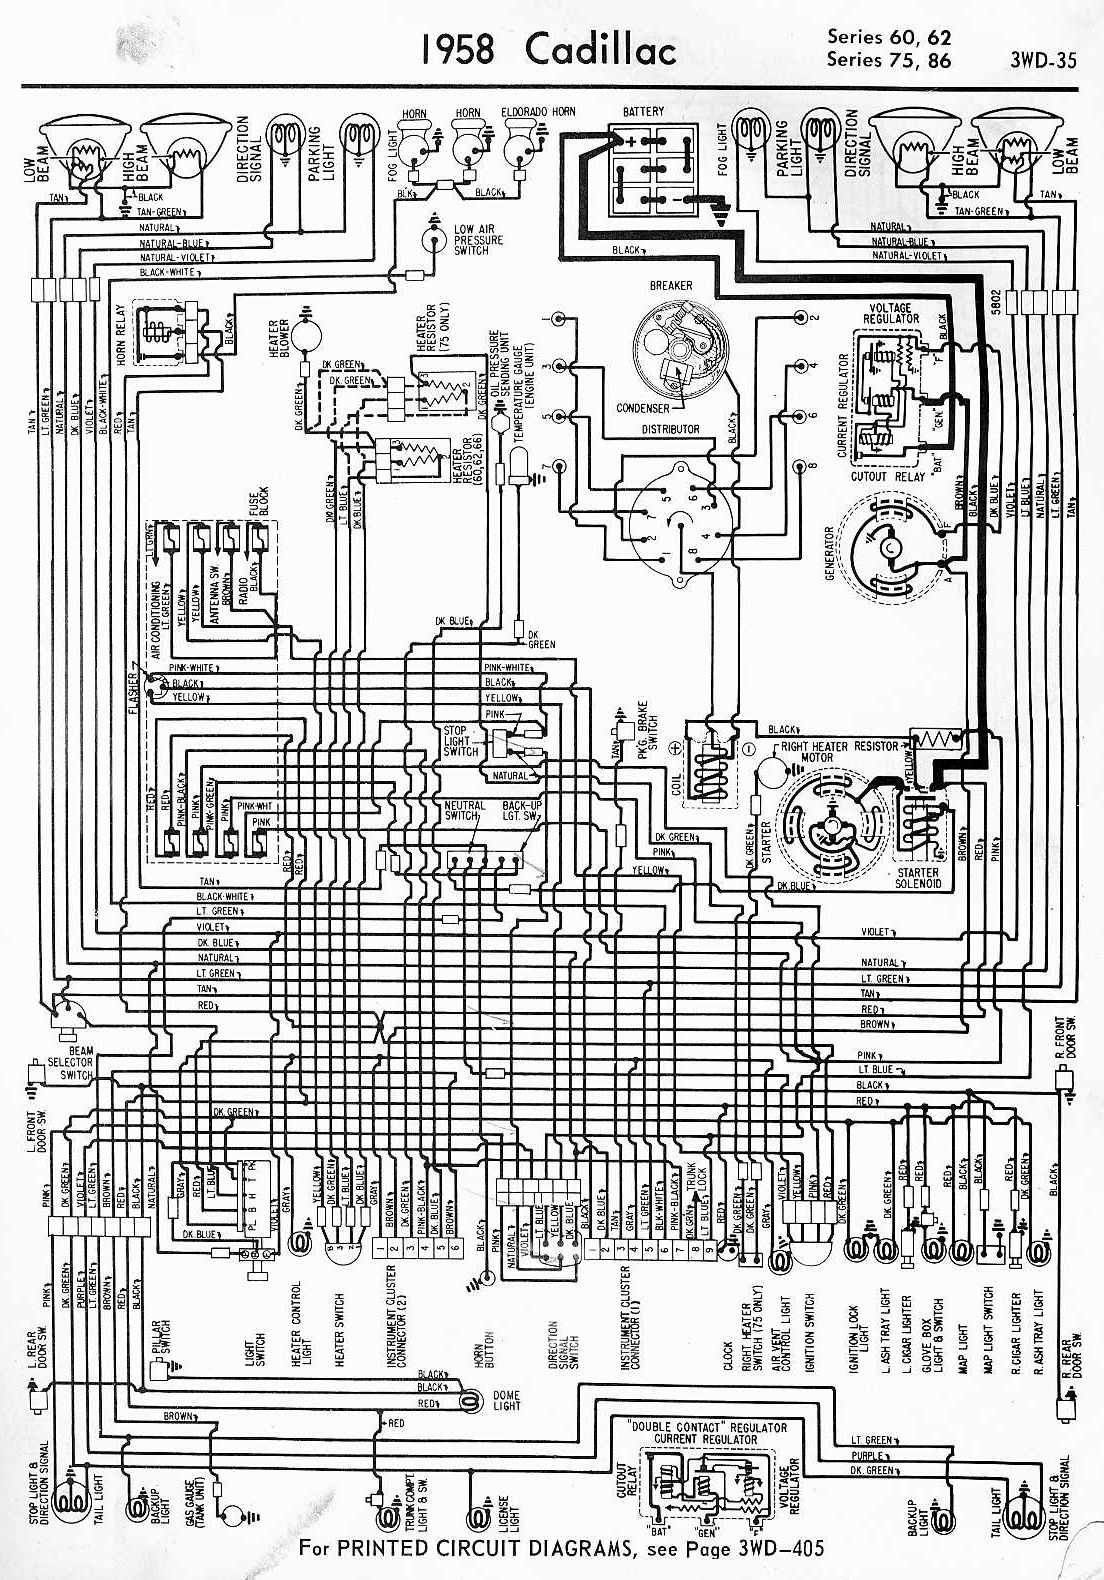 medium resolution of 1997 cadillac eldorado engine diagram wiring diagram operations 2000 cadillac deville engine diagram